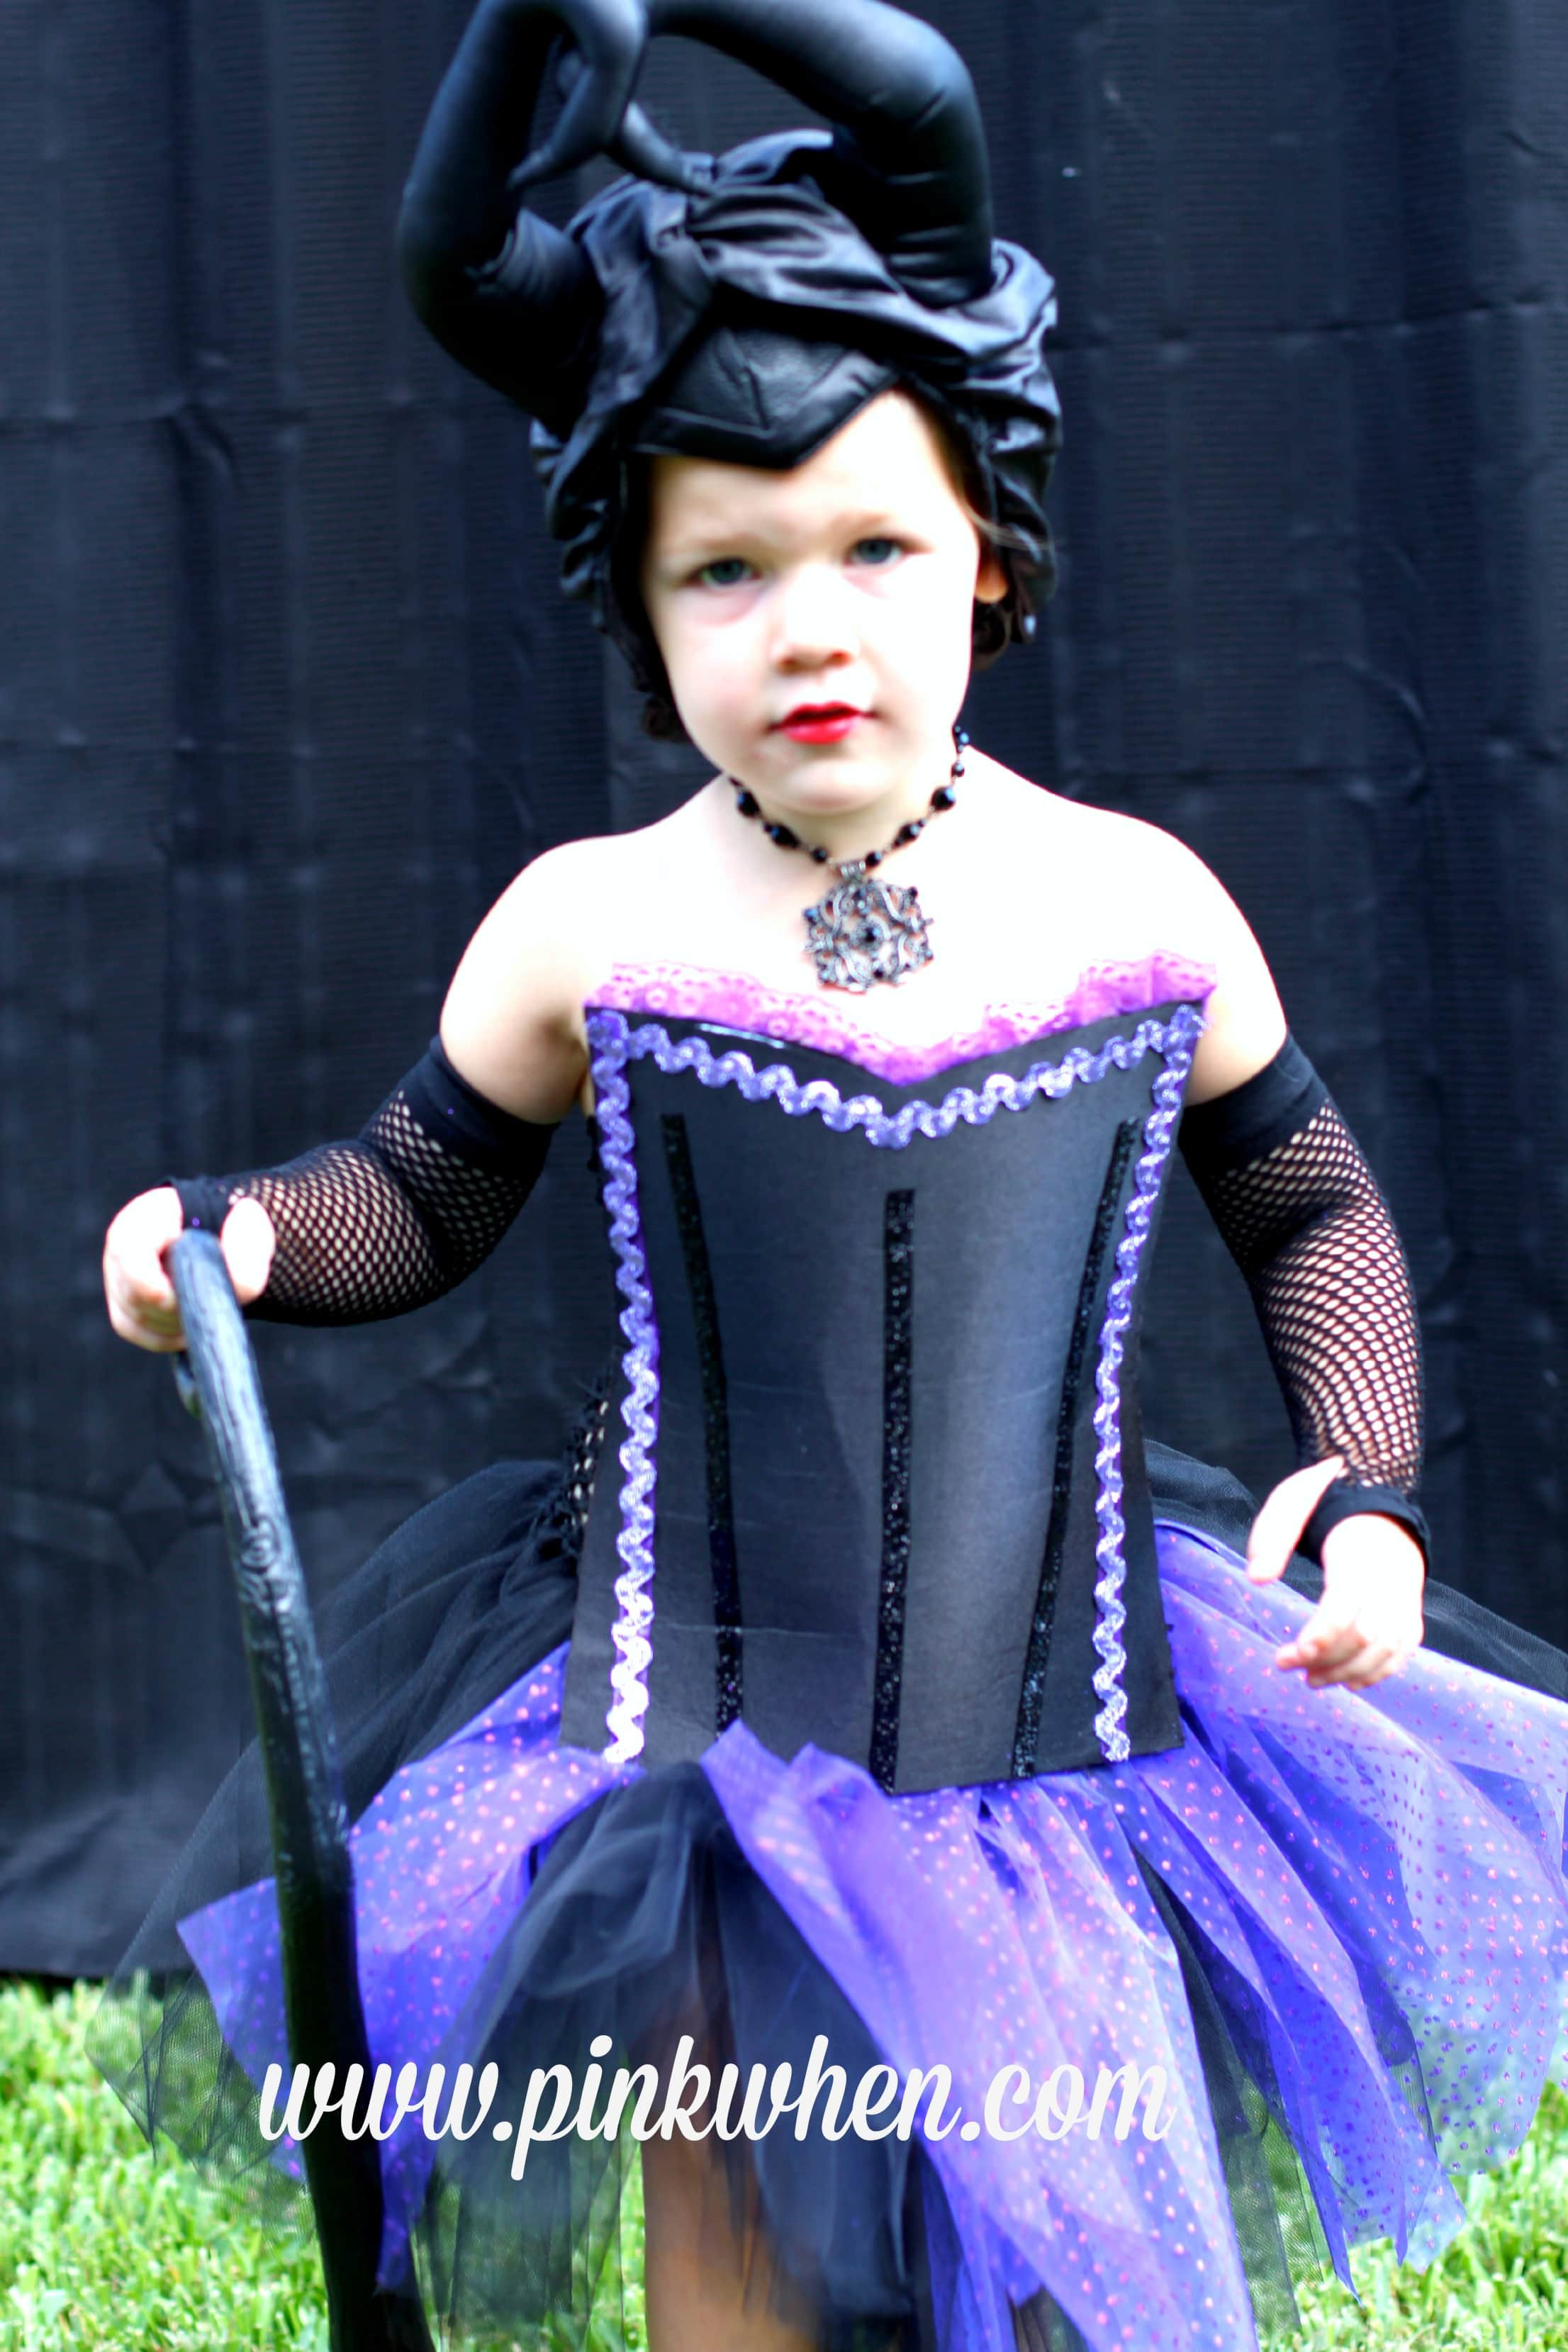 Best ideas about DIY Maleficent Costume . Save or Pin DIY No Sew Maleficent Costume Page 2 of 2 Now.